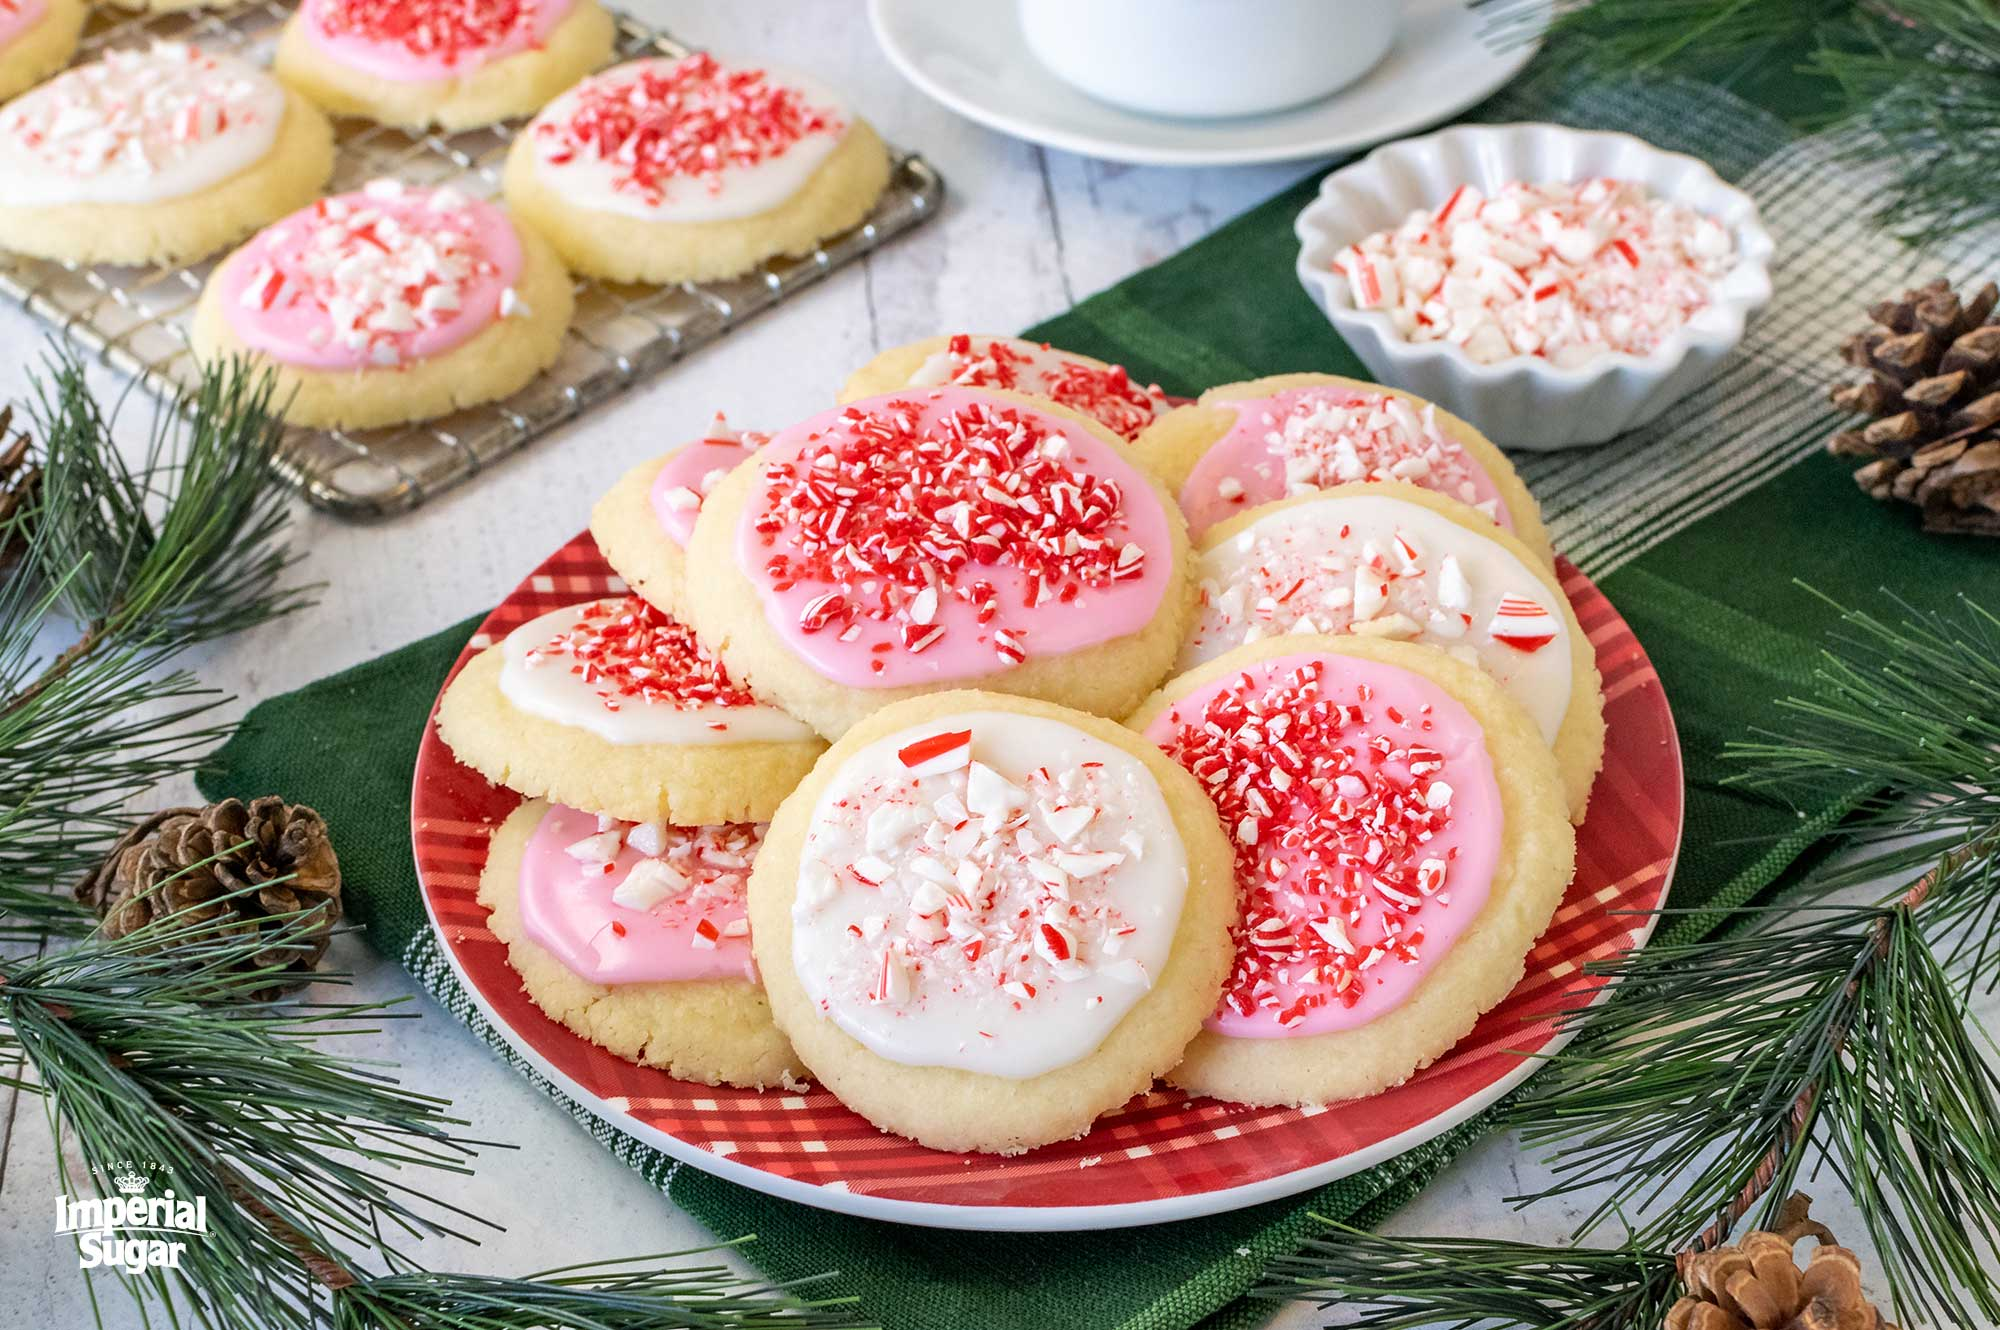 When Will Mint Meltaways Be Available For Christmas 2021? Peppermint Meltaways Imperial Sugar